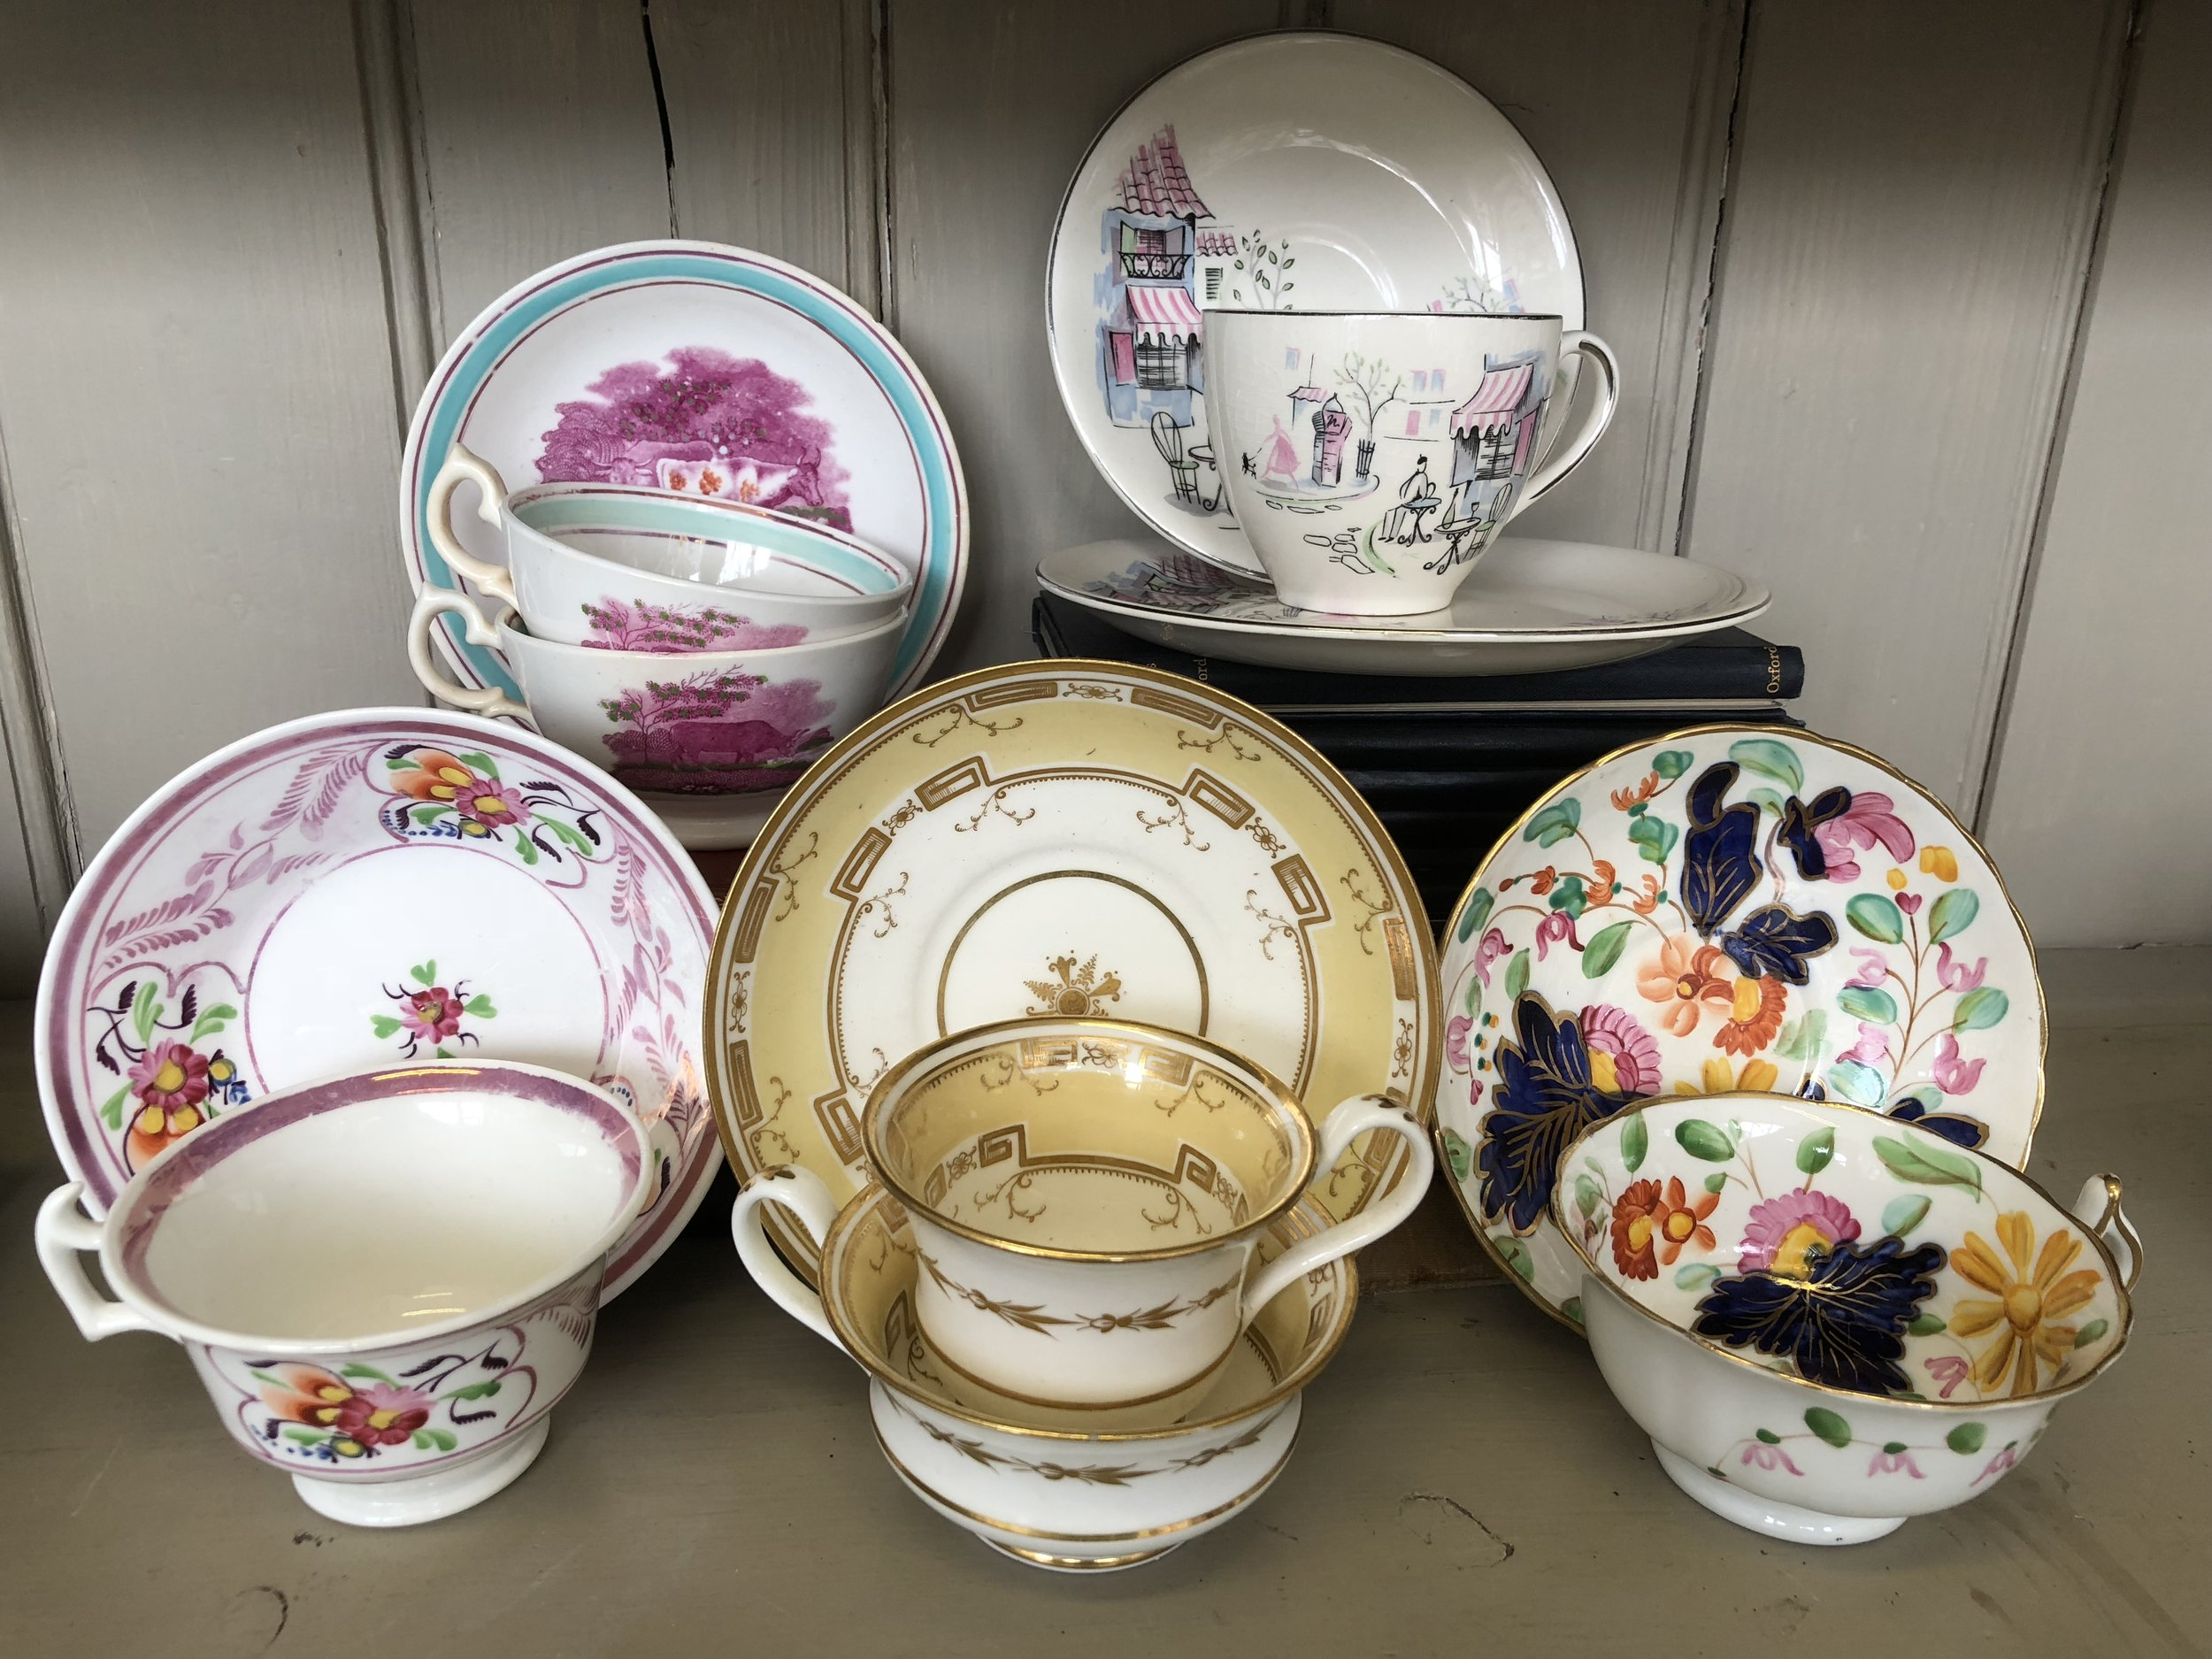 A selection of antique and vintage cups and saucers